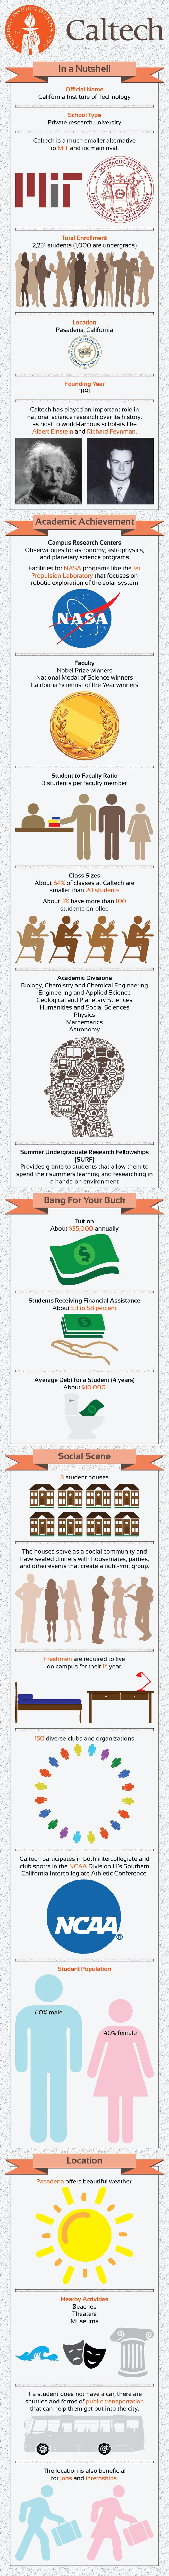 California Institute of Technology Infographic - Caltech